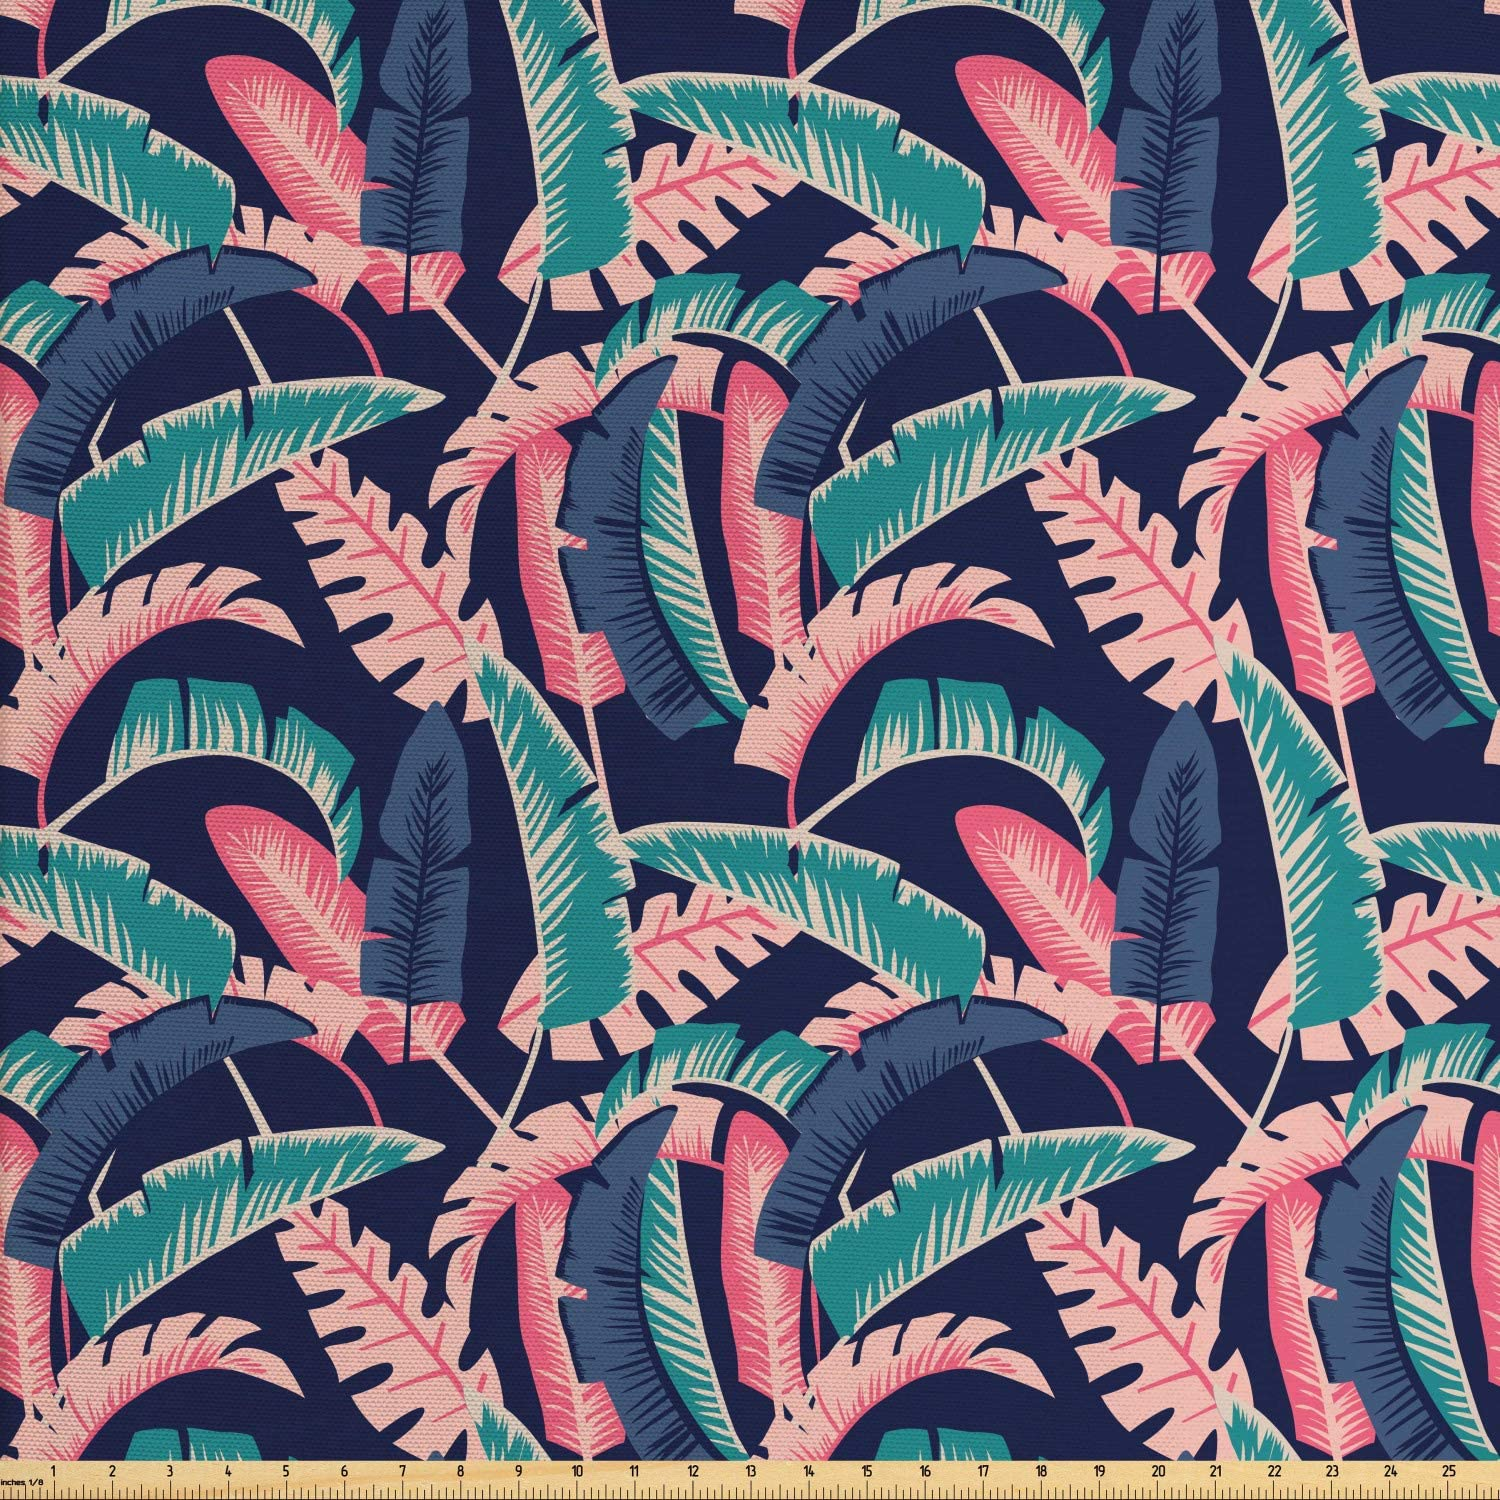 Ambesonne Tropical Fabric by The Yard, Hawaiian Exotic Banana Leaves Pattern, Decorative Fabric for Upholstery and Home Accents, 1 Yard, Dark Lavender Pale Pink